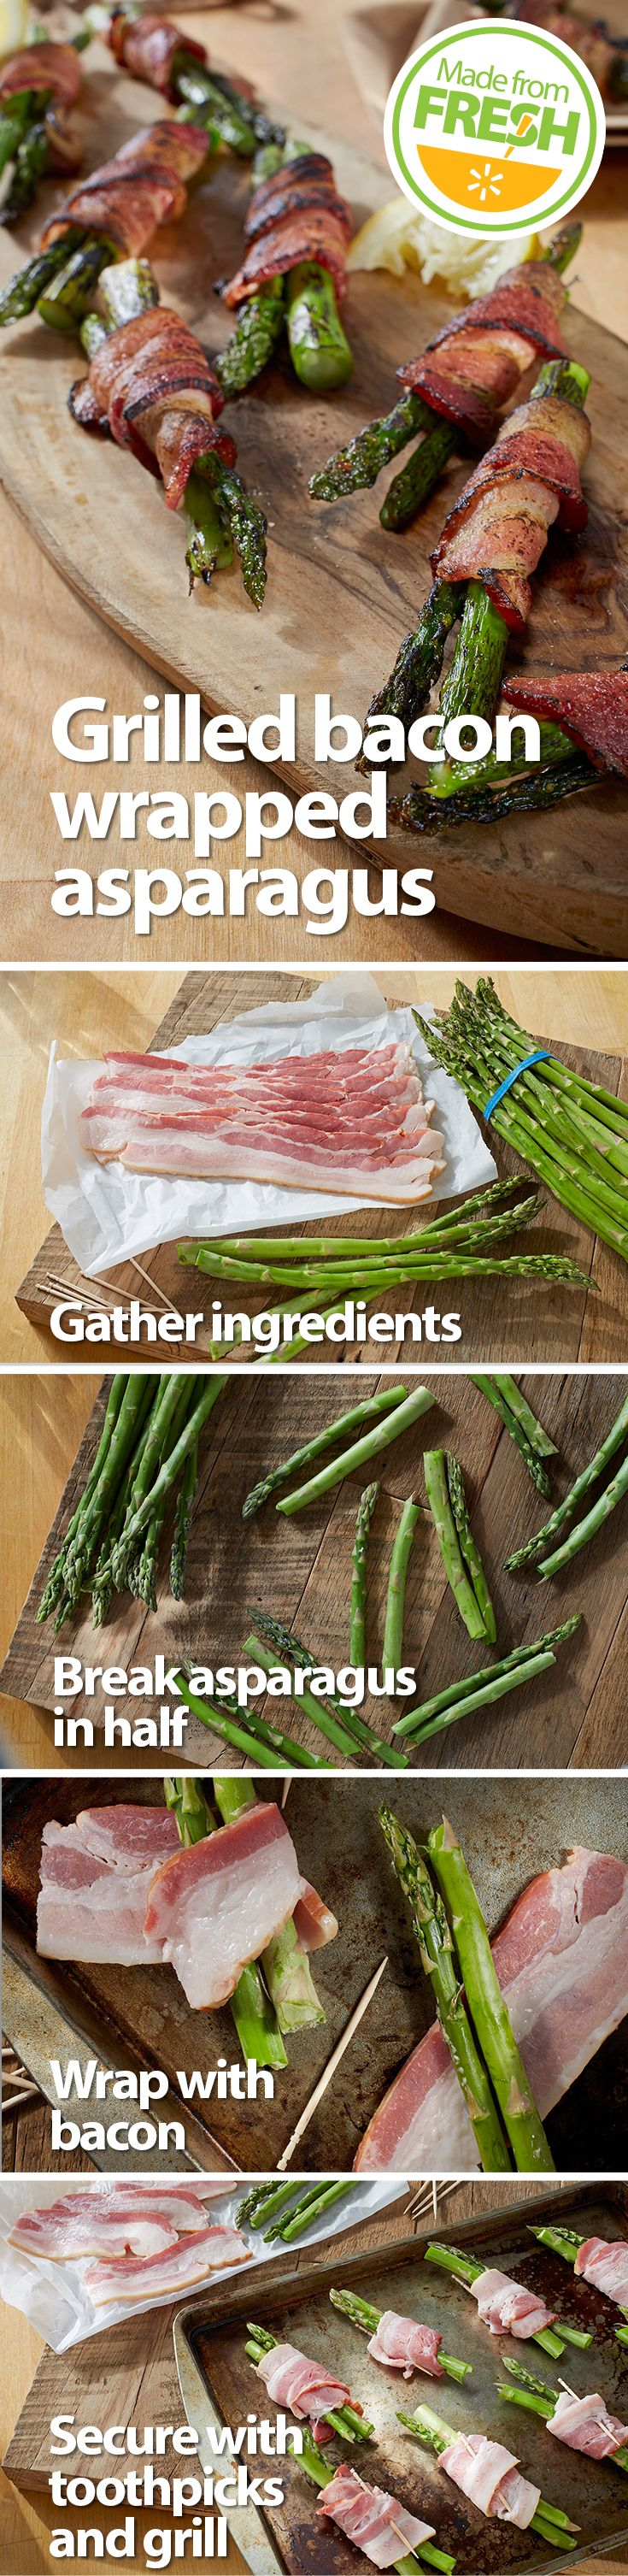 Make an impression at your next cook- out. This tender fresh asparagus wrapped in crispy bacon will have your guests coming back for more. Find these fresh ingredients at your local Walmart.